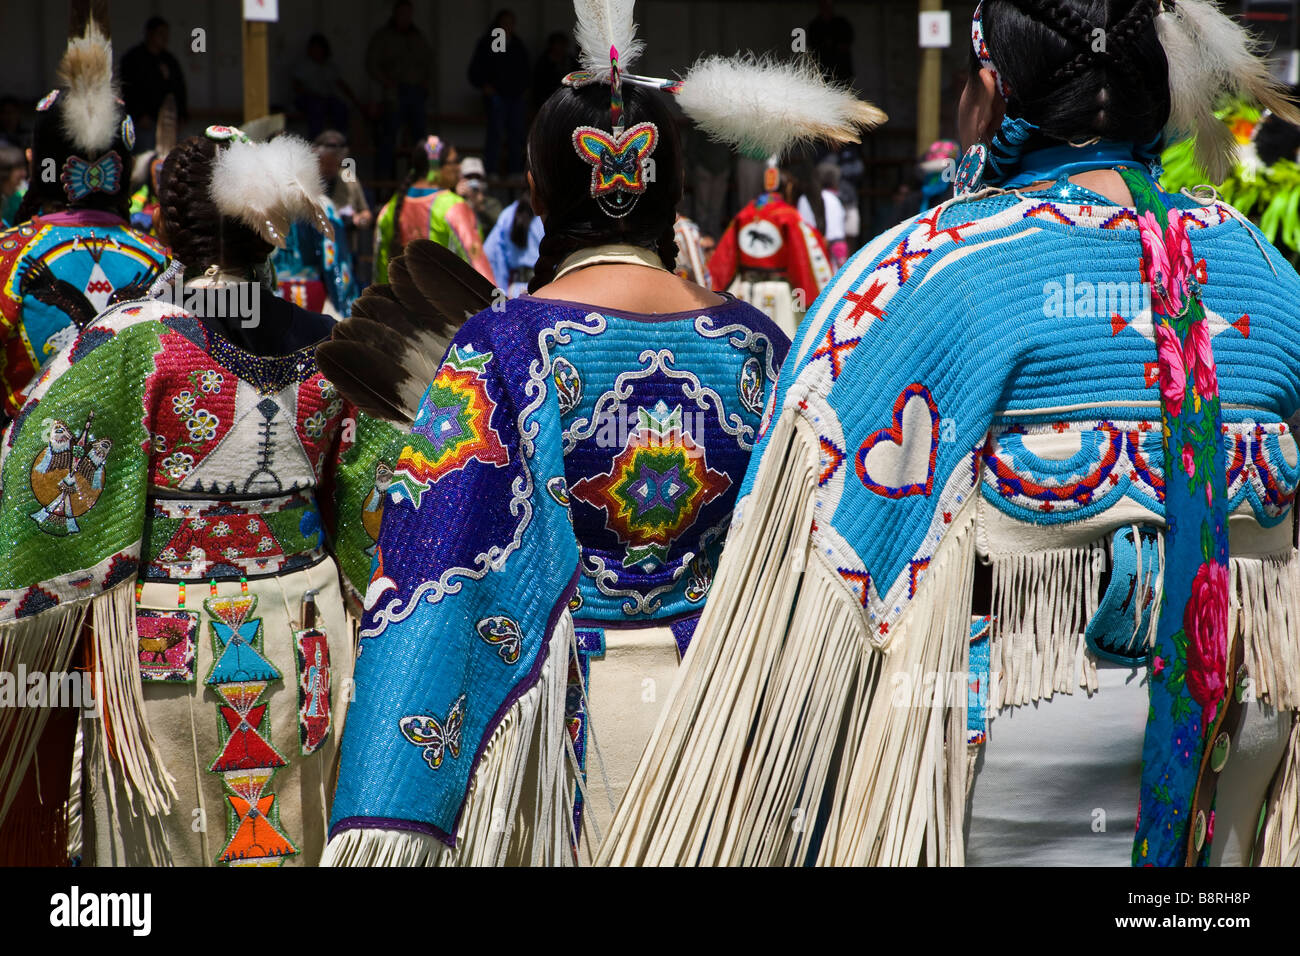 Costumed Indian dancers at North American Indian Days Celebration, 2008, Browning, Montana. Stock Photo